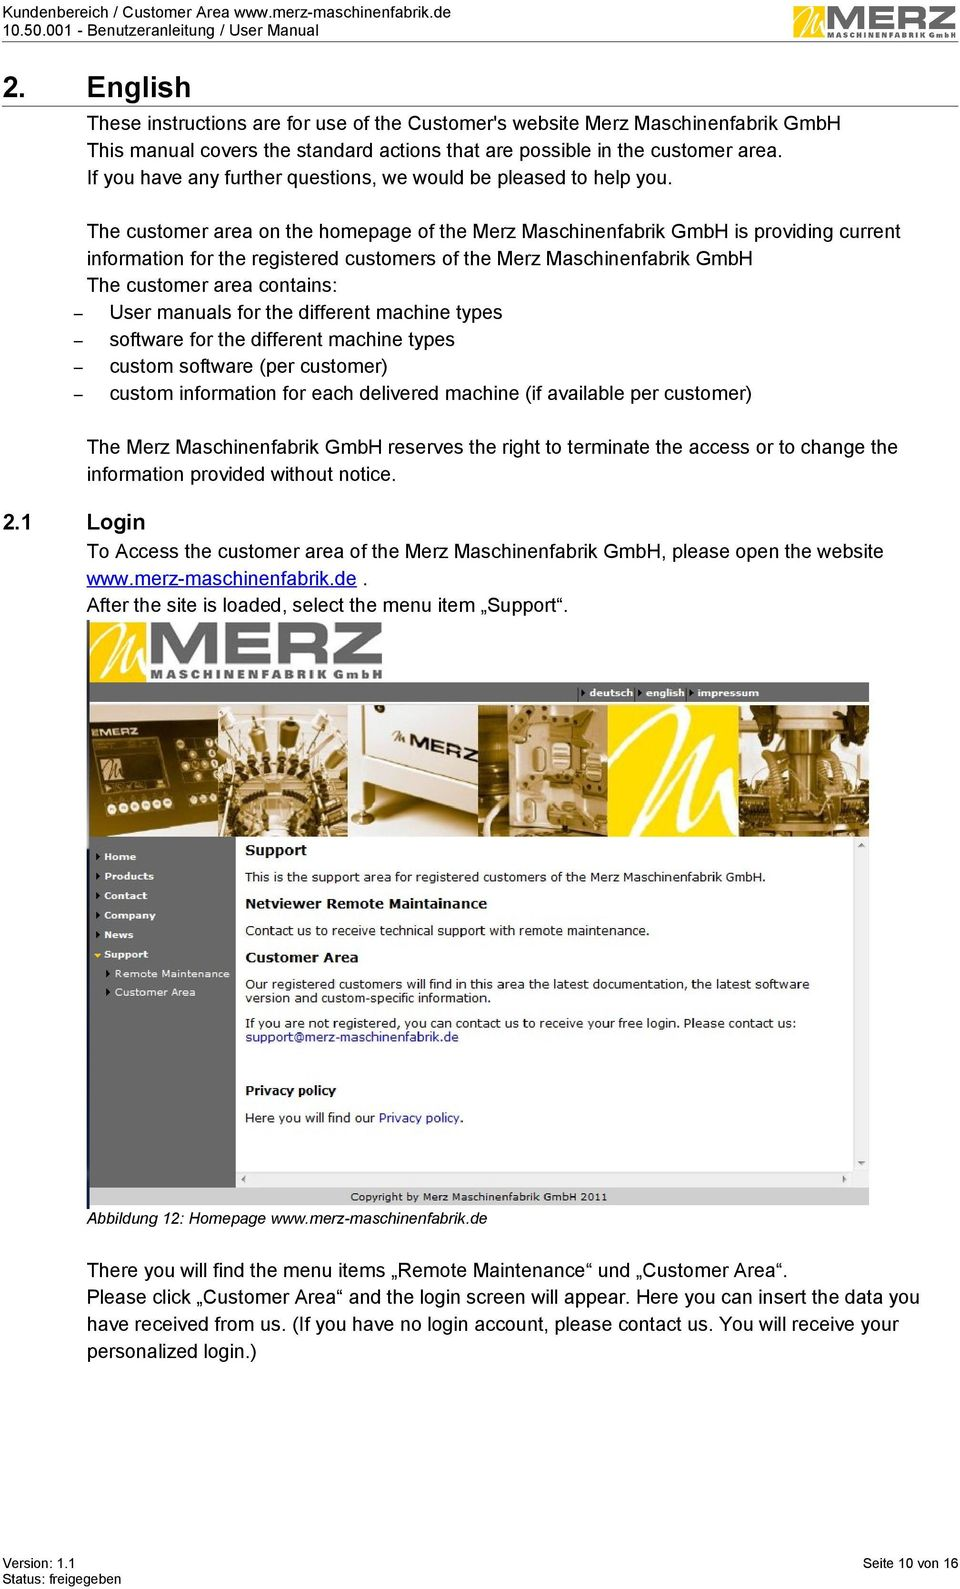 The customer area on the homepage of the Merz Maschinenfabrik GmbH is providing current information for the registered customers of the Merz Maschinenfabrik GmbH The customer area contains: User